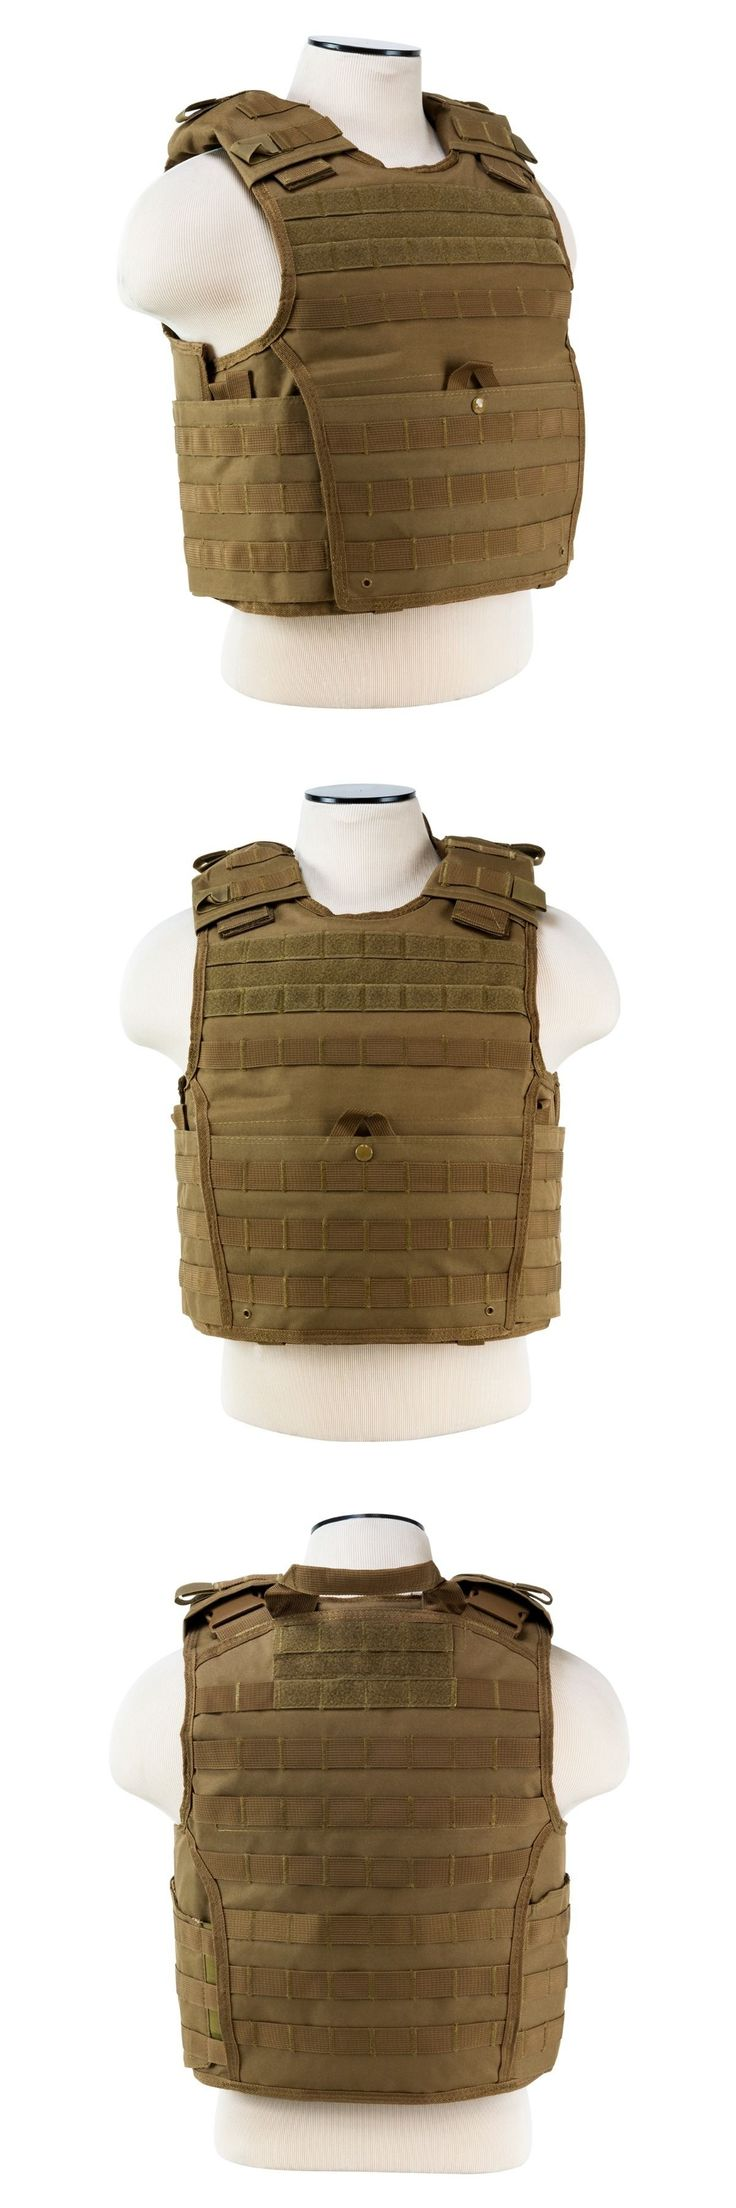 Chest Rigs and Tactical Vests 177891: Ncstar Vism Tan Tactical Molle Operator Plate Carrier Body Armor Chest Rig Small -> BUY IT NOW ONLY: $39.85 on eBay!